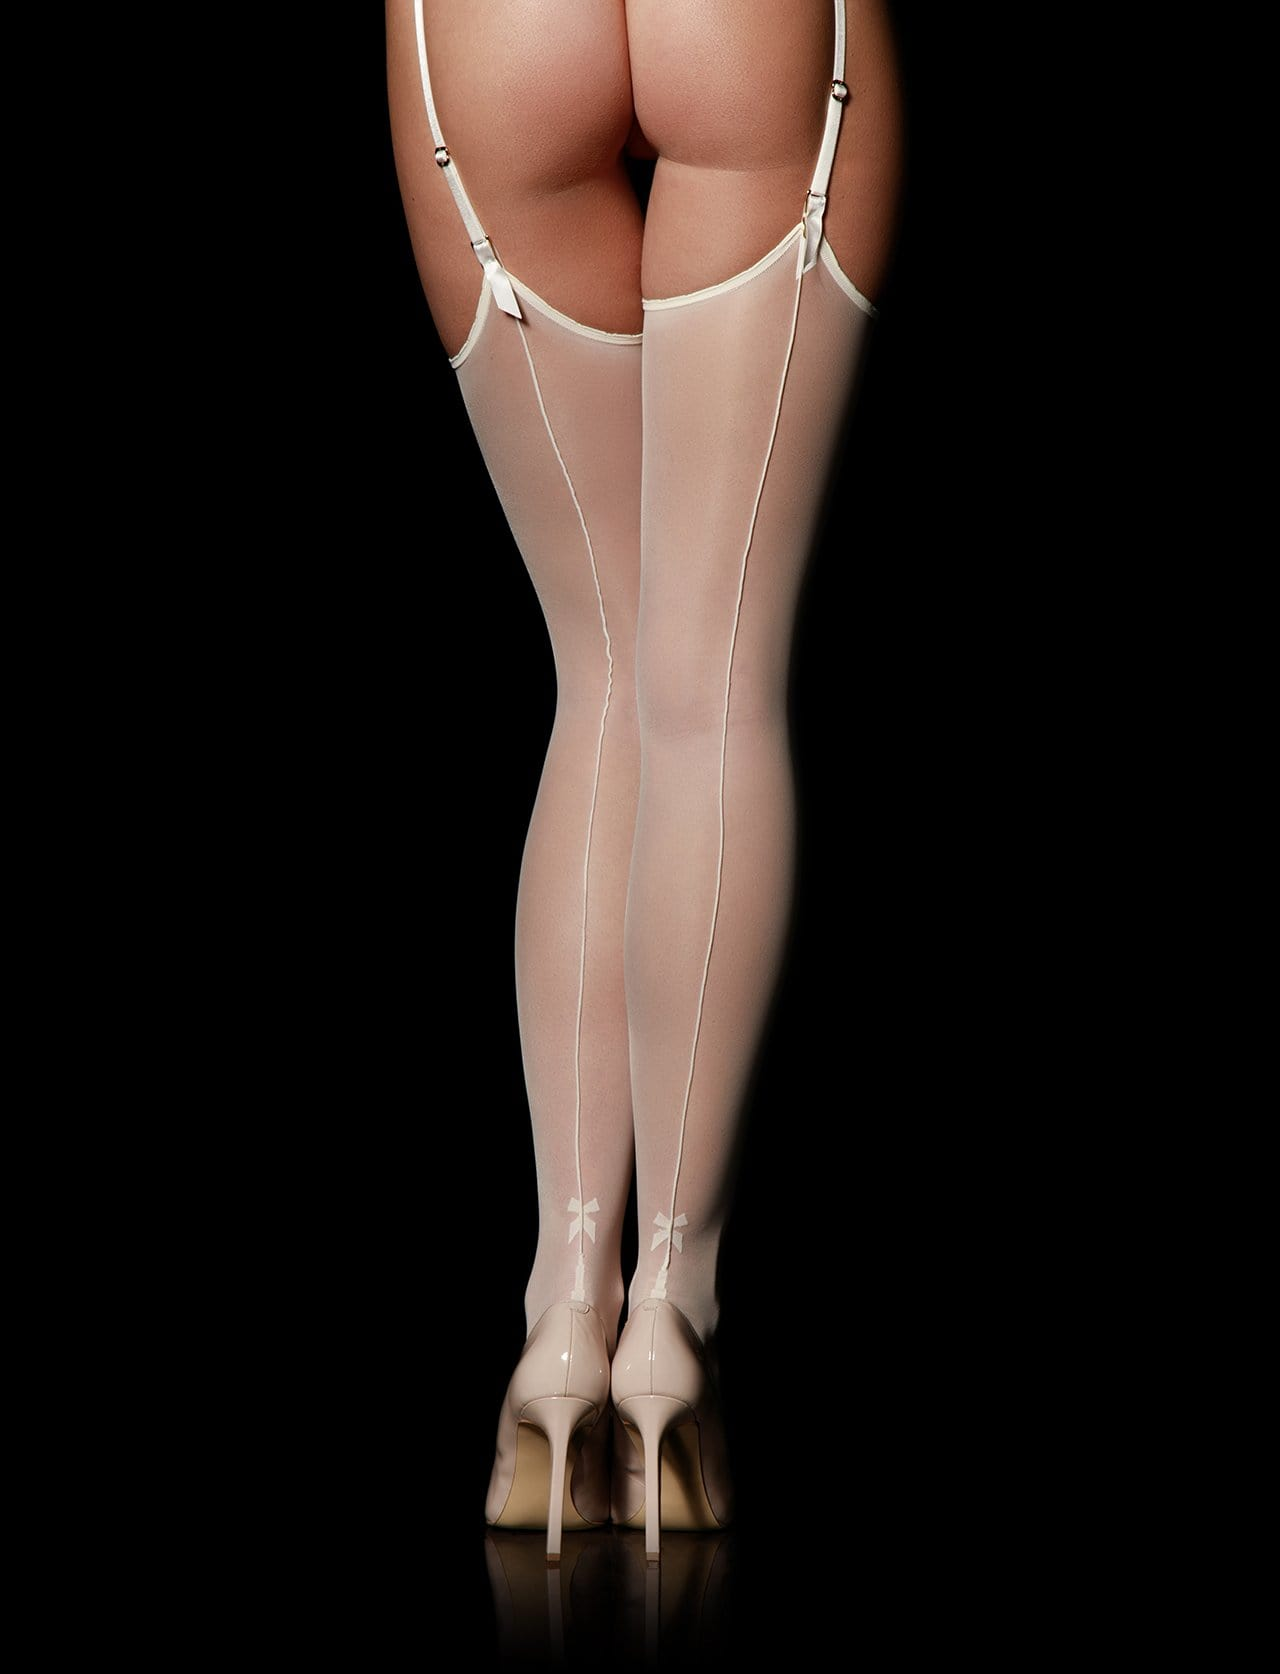 Ivory Bowties Thigh High Suspender Stockings